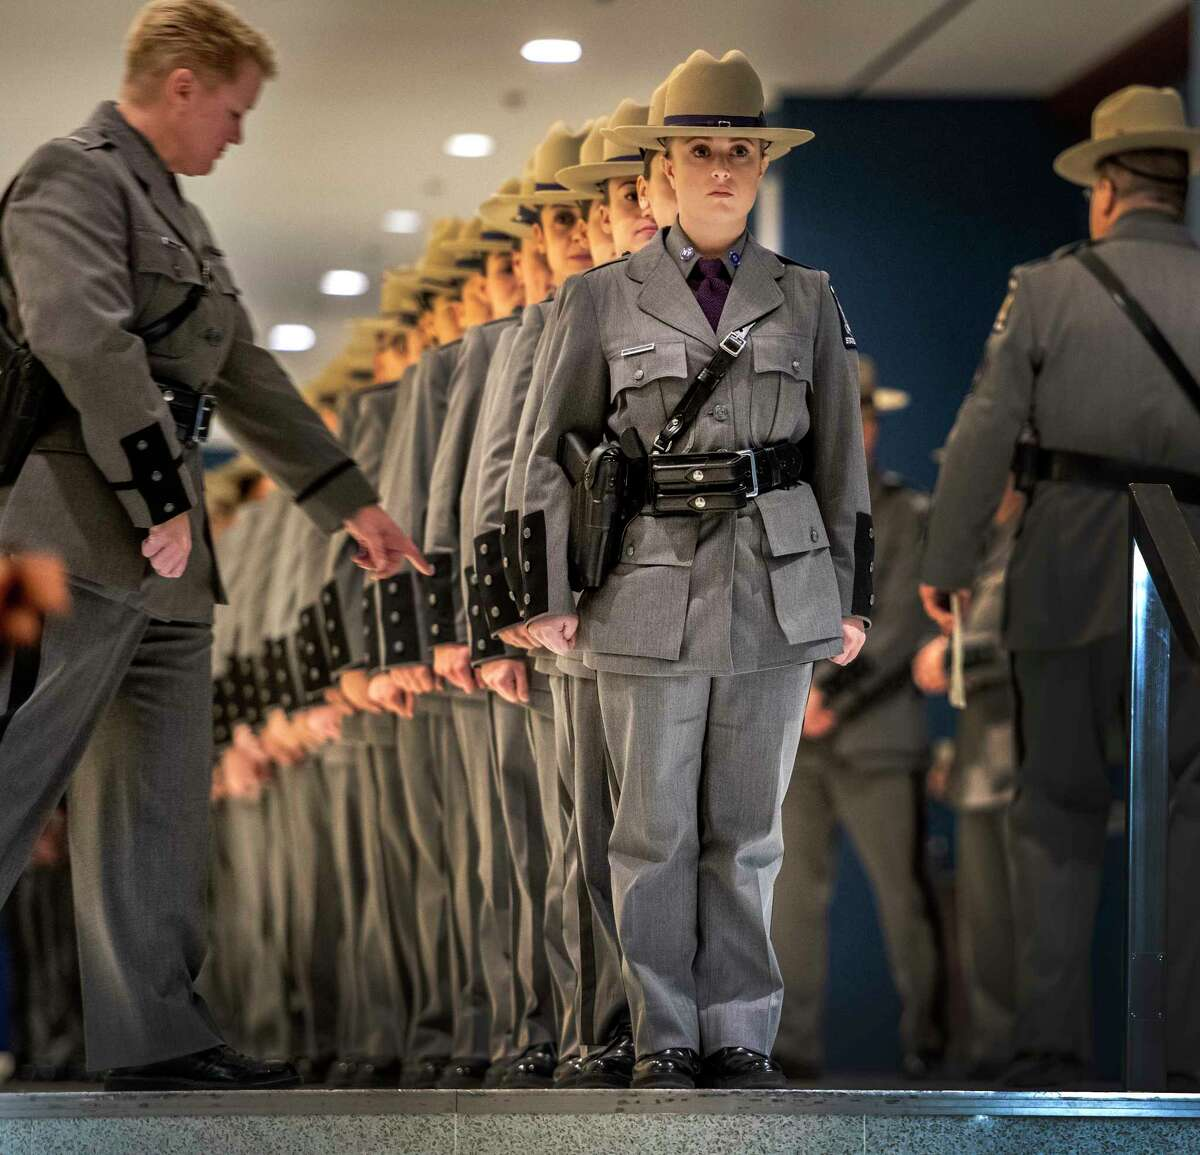 Lt. Christine Baker, left, scrutinizes members of the 207th session of the Basic School at the New York State Police Academy before they march in to the Empire Plaza Convention Center for their graduation ceremony Wednesday Nov. 14, 2018 in Albany, N.Y. (Skip Dickstein/Times Union)